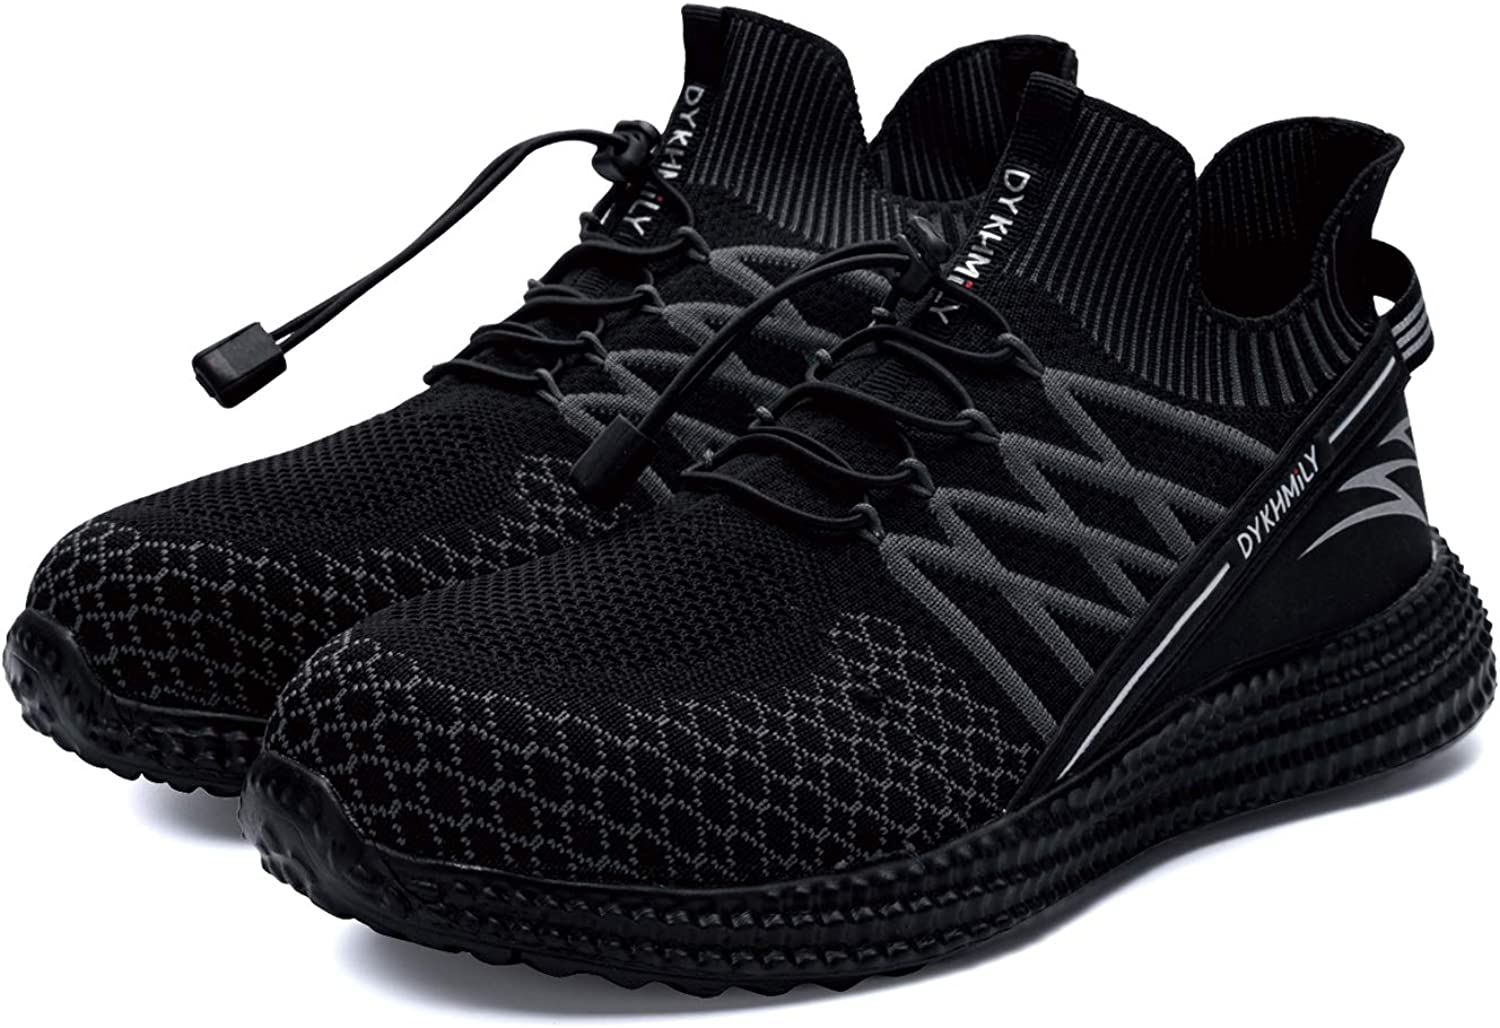 DYKHMILY Steel Toe Sneakers for Men Women Waterproof Lightweight Safety Work Shoes Slip Resistant Puncture Proof Indestructible Shoes